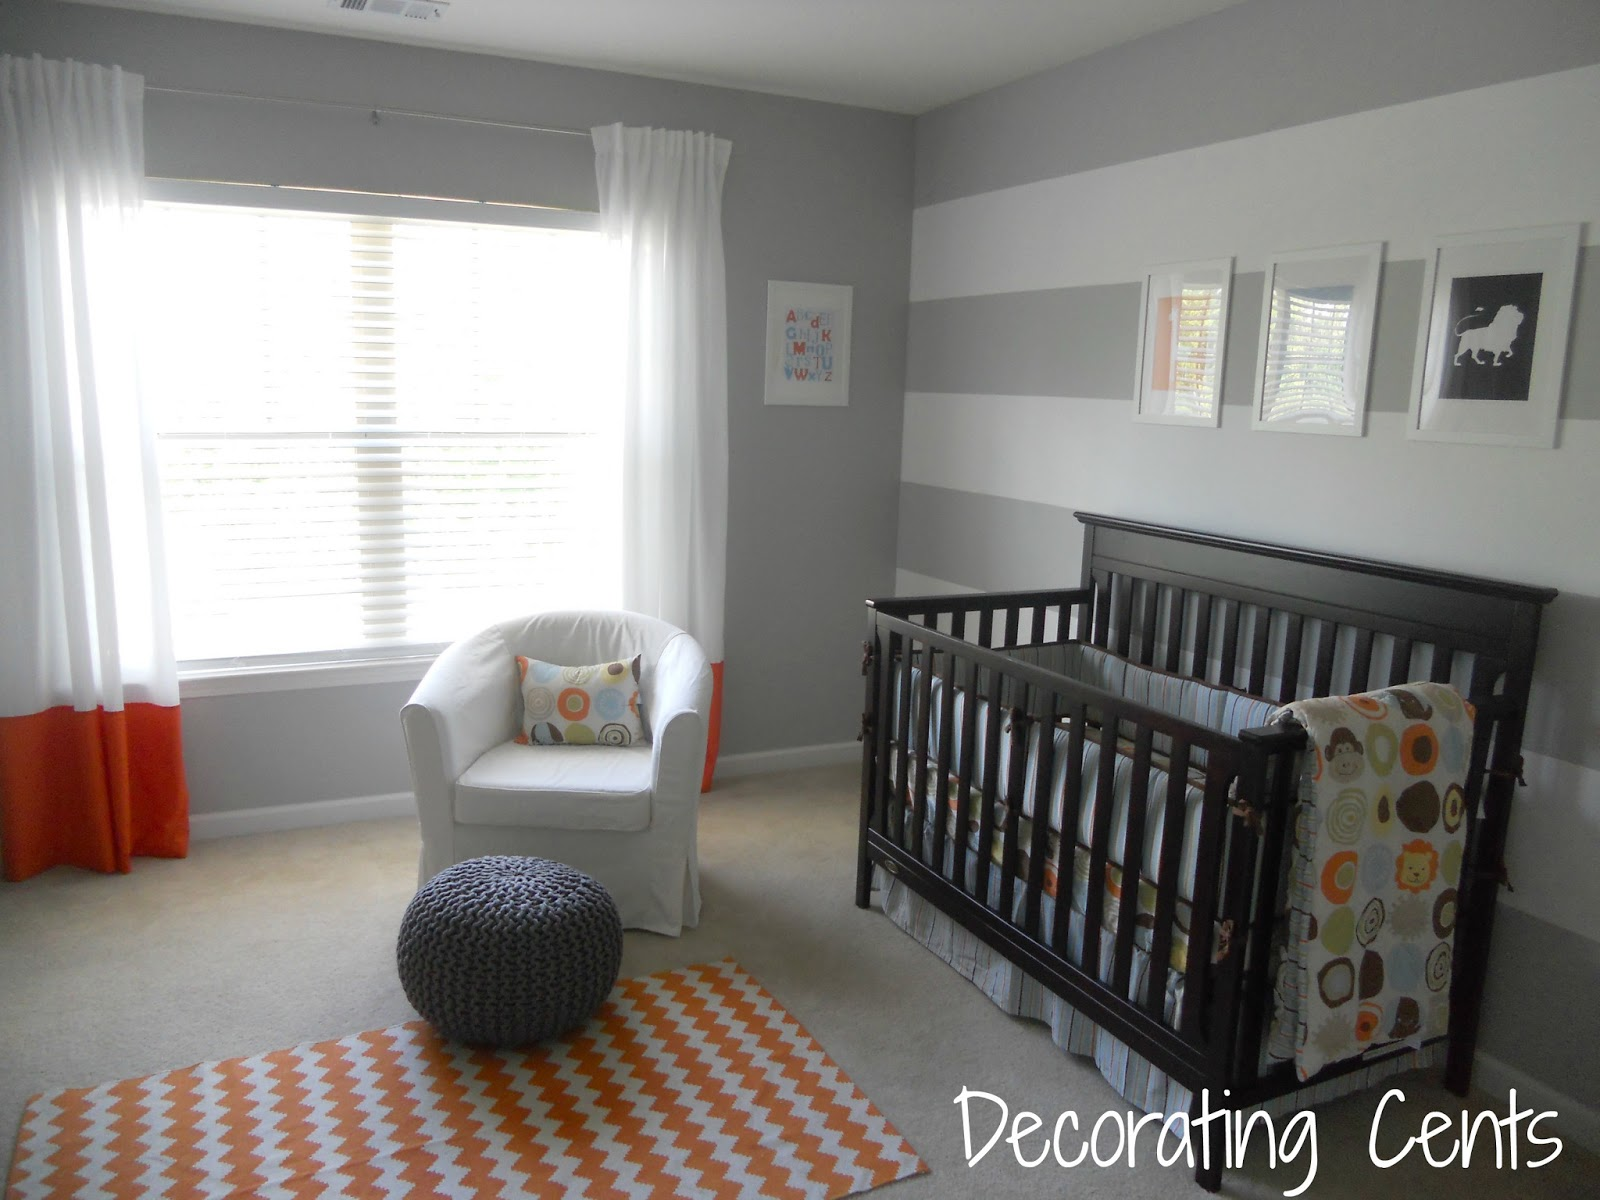 Ikea Crib Bedding Decorating Cents: May 2013